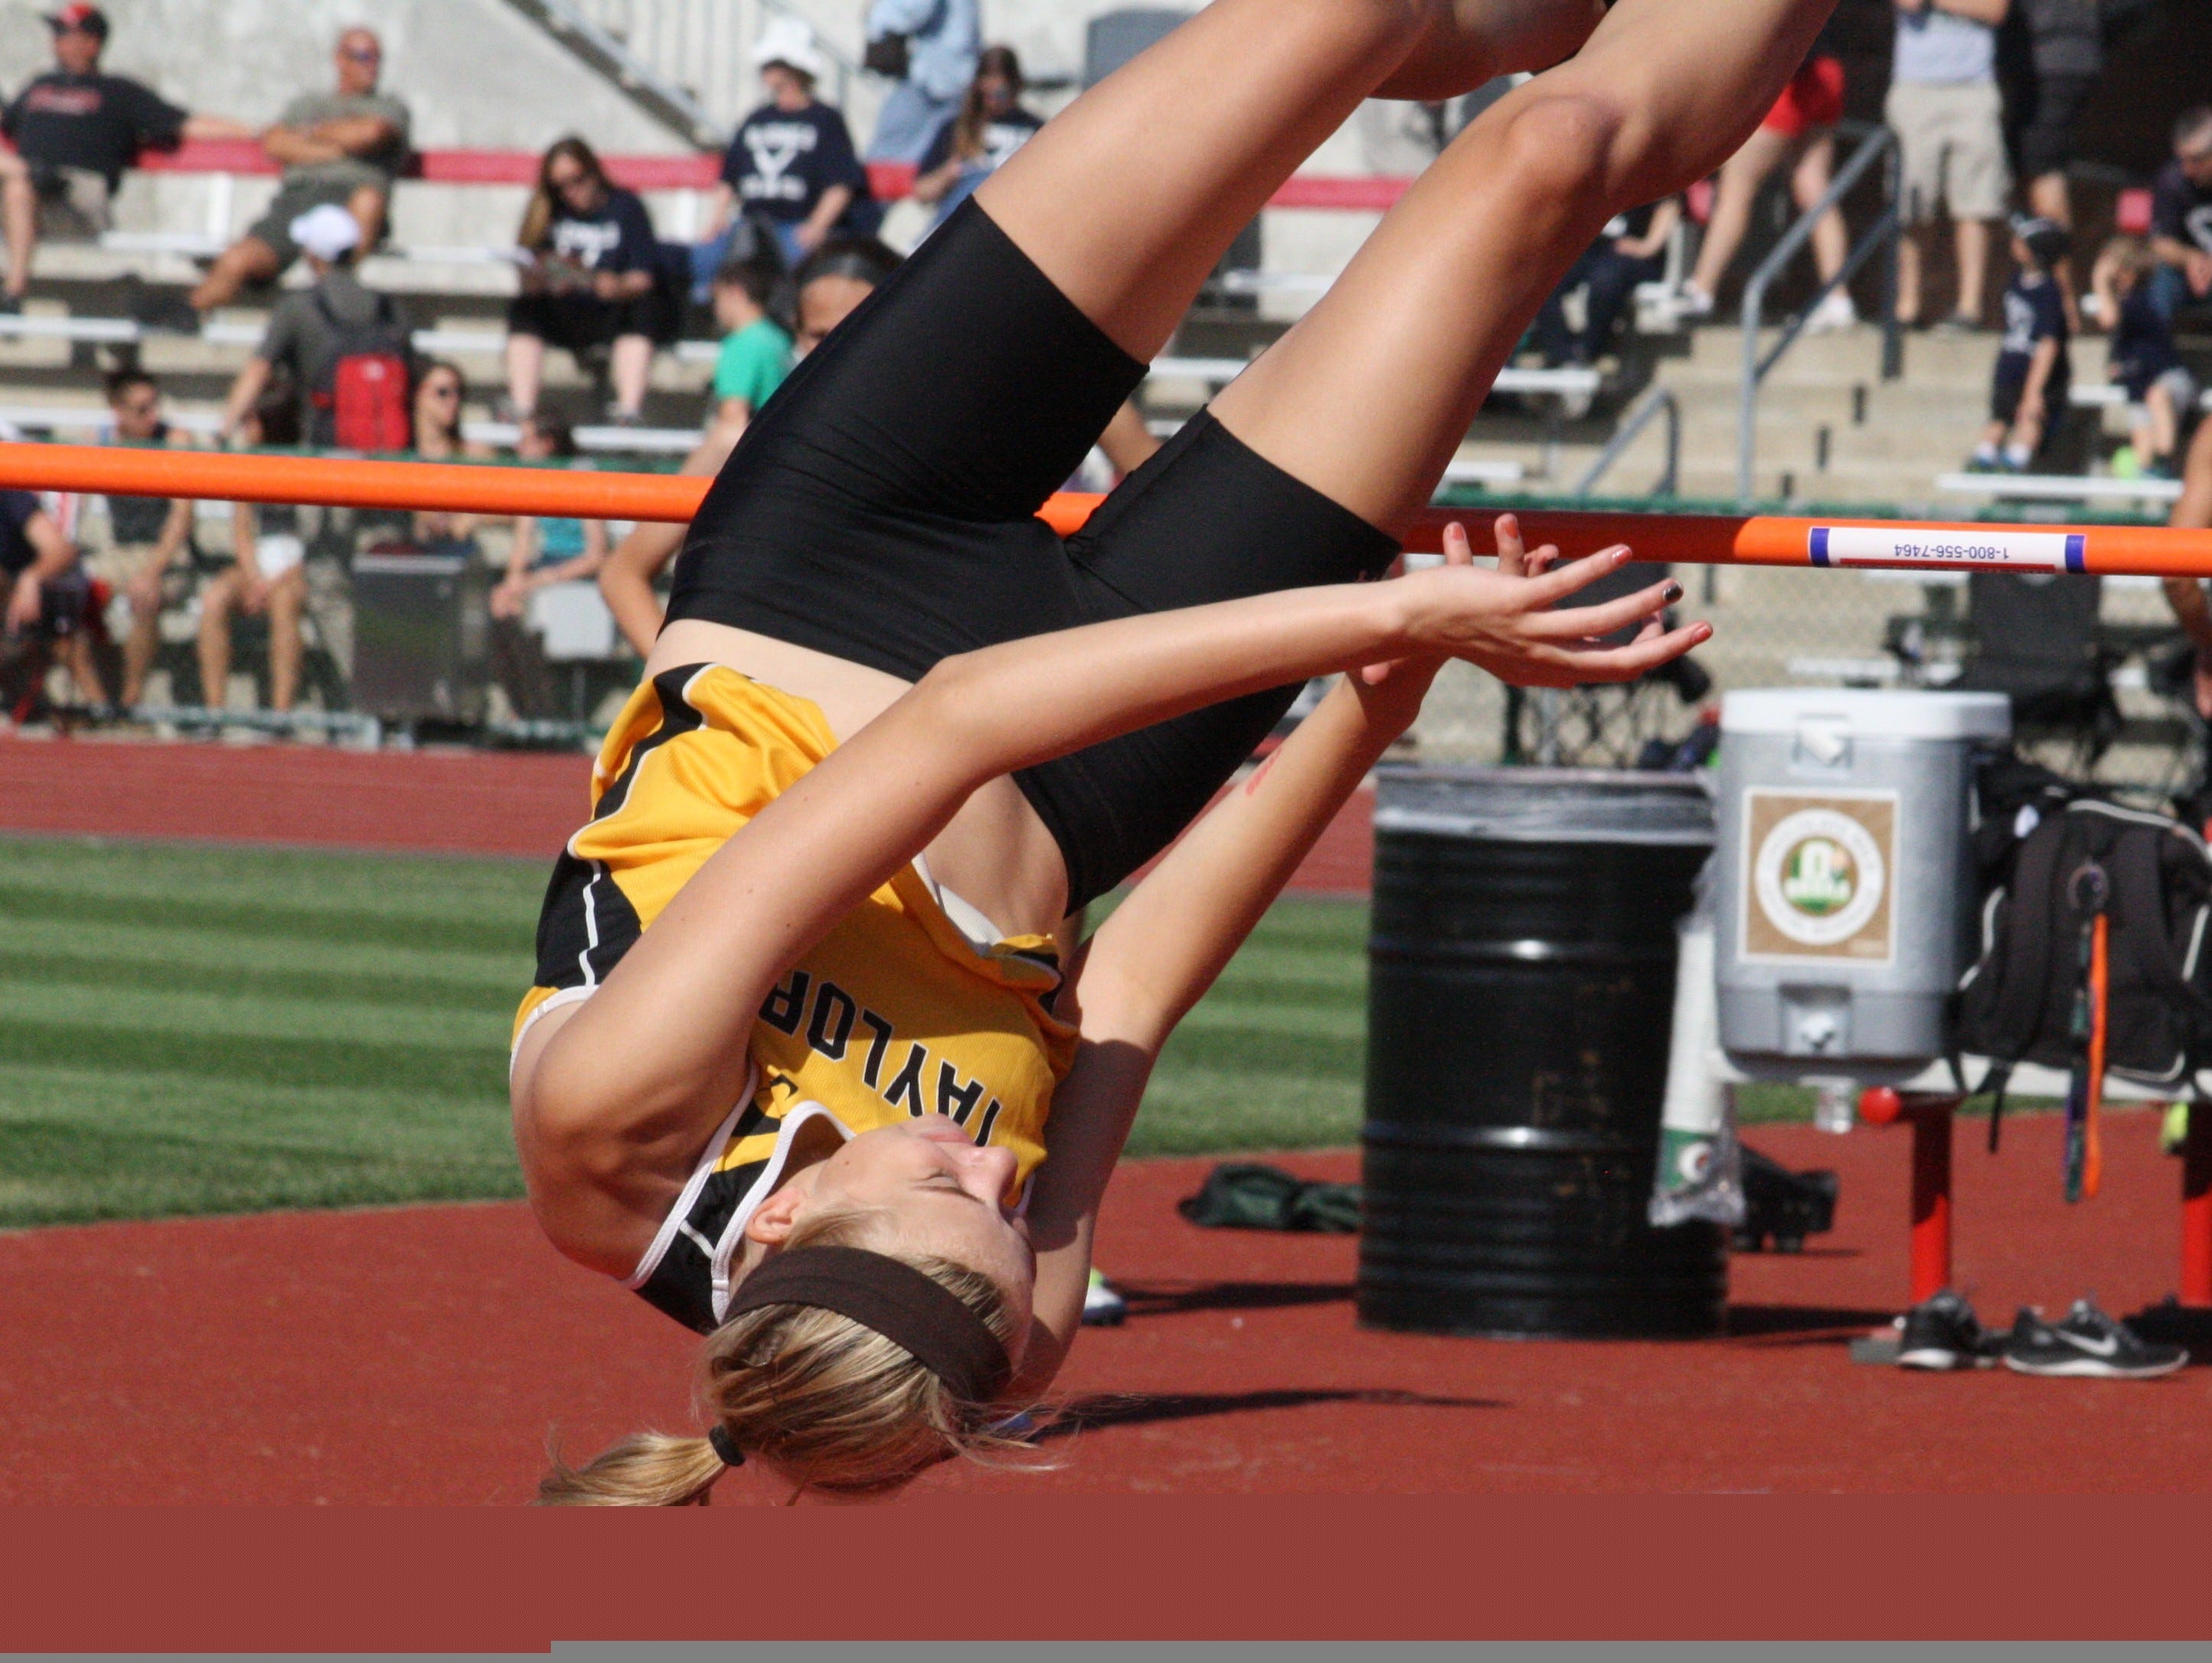 Taylor High School's Randi Schutte clears the bar in her opening high jump Division II state track and field championships June 6 last season at Jesse Owens Memorial Stadium.